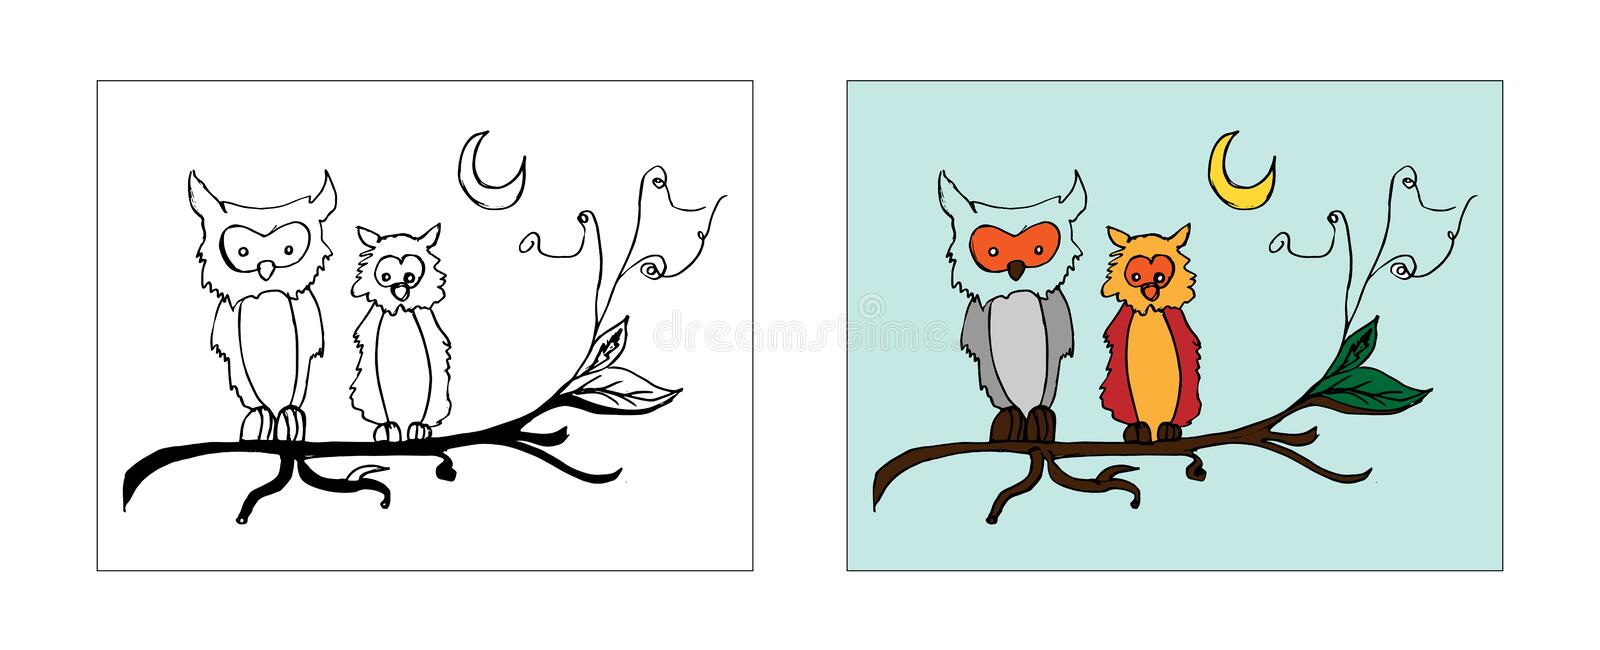 Two owls on branch coloring book design with monochrome and colored versions. Freehand sketch for adult anti stress coloring book stock illustration